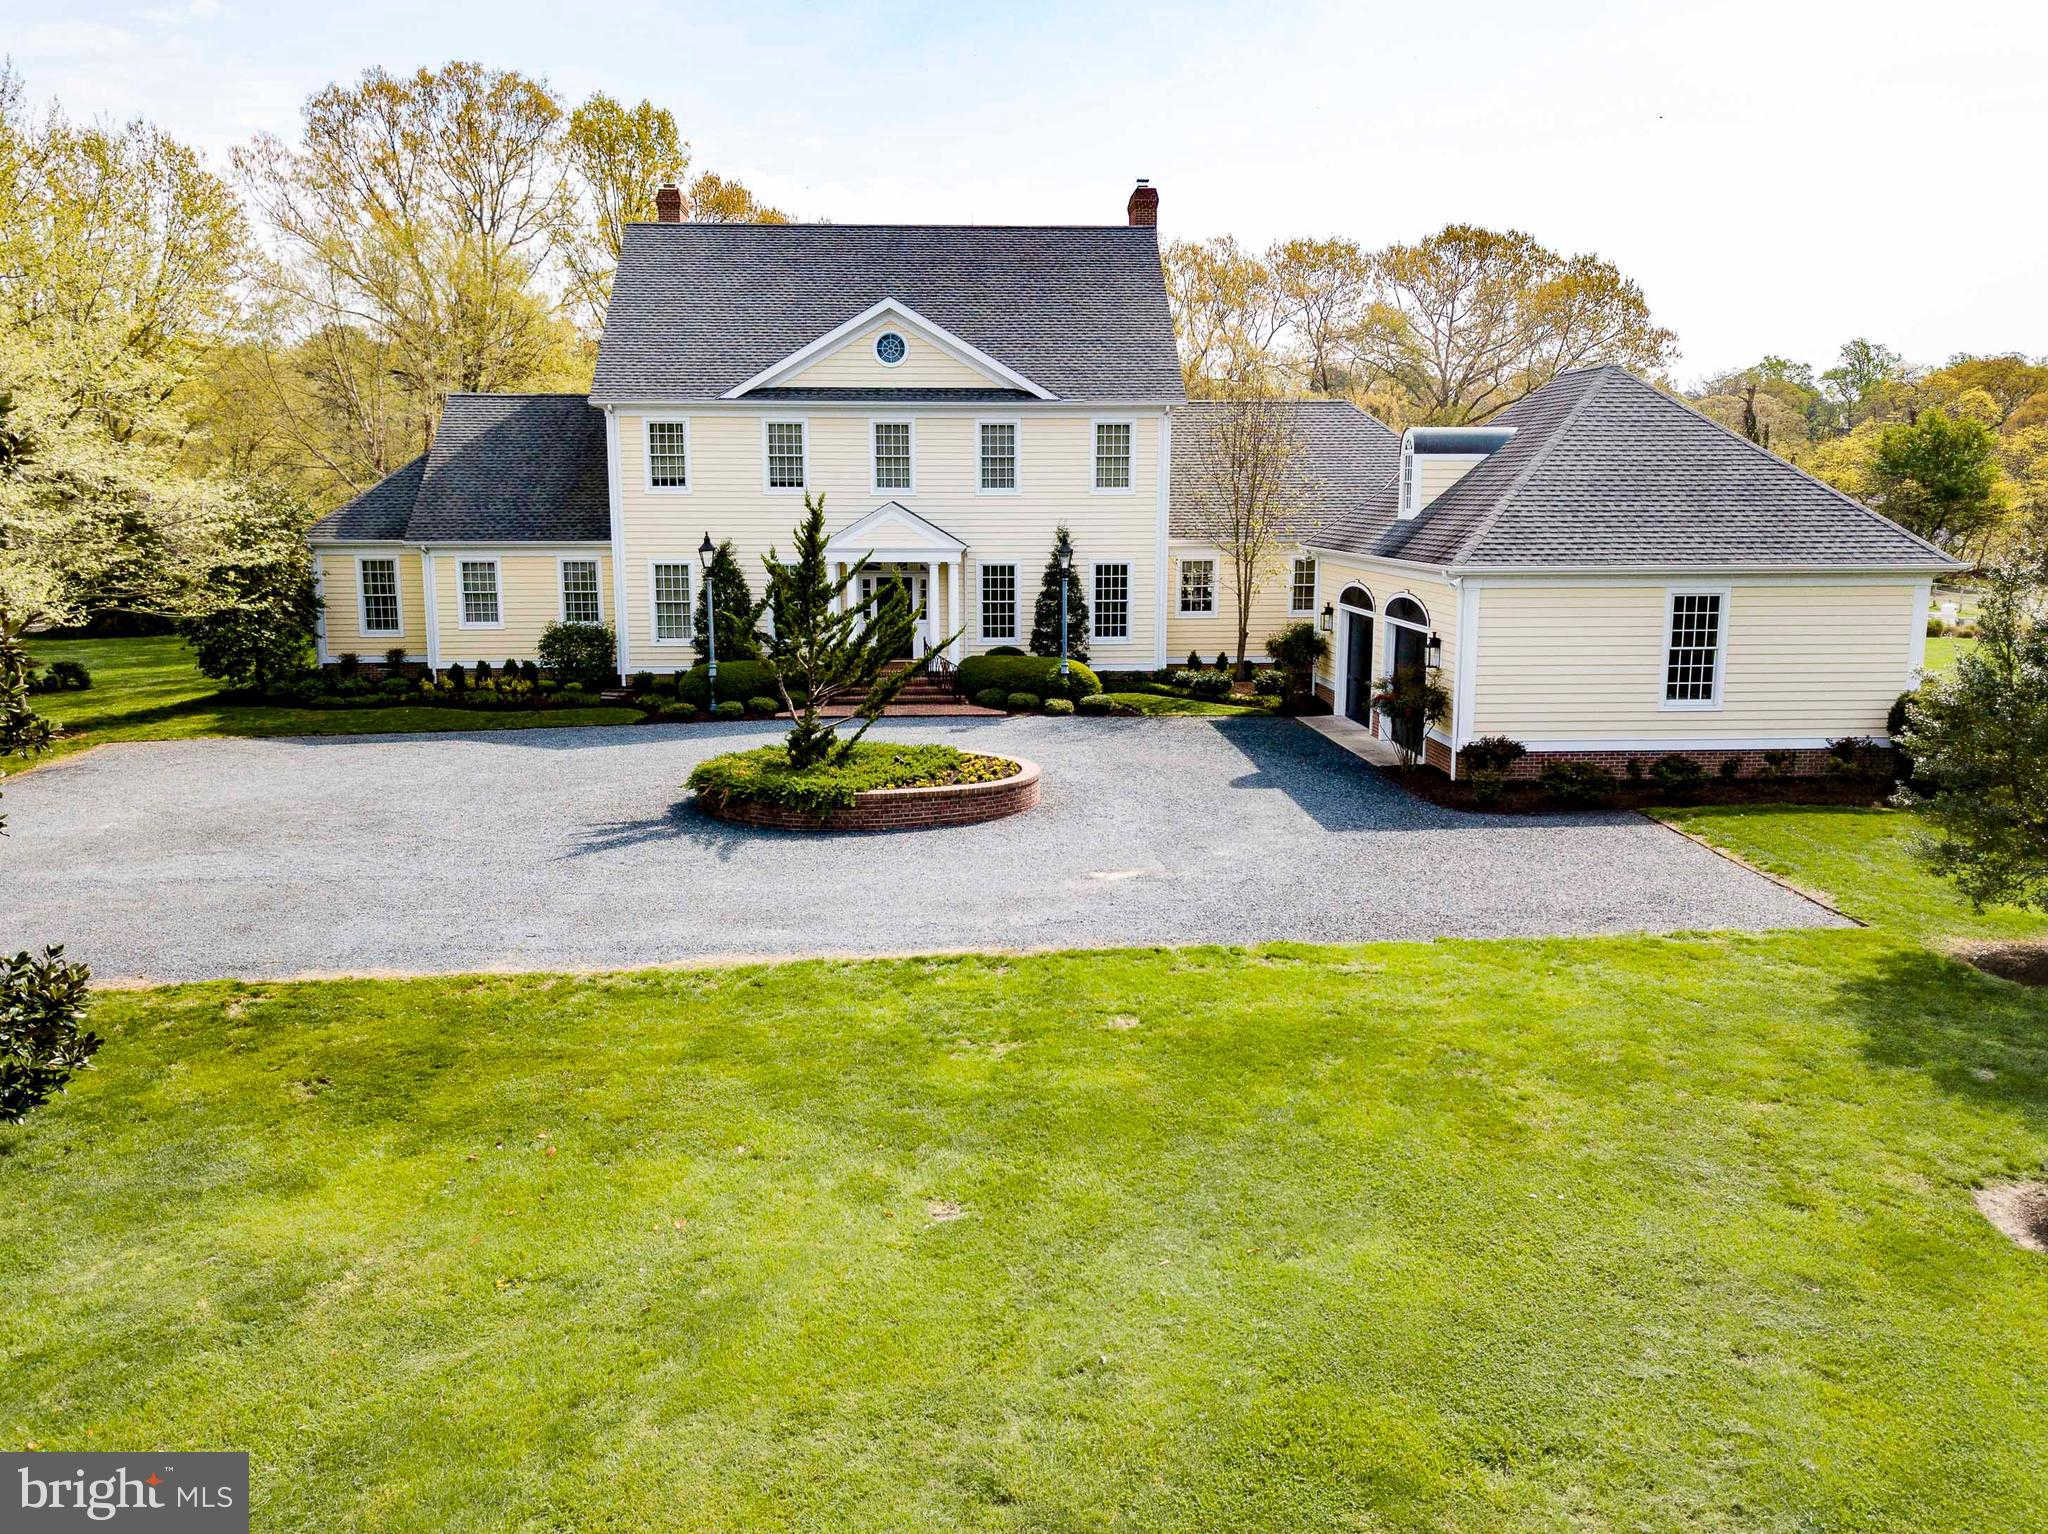 27588 Wakefield Lane, Easton, MD 21601 now has a new price of $2,369,000!